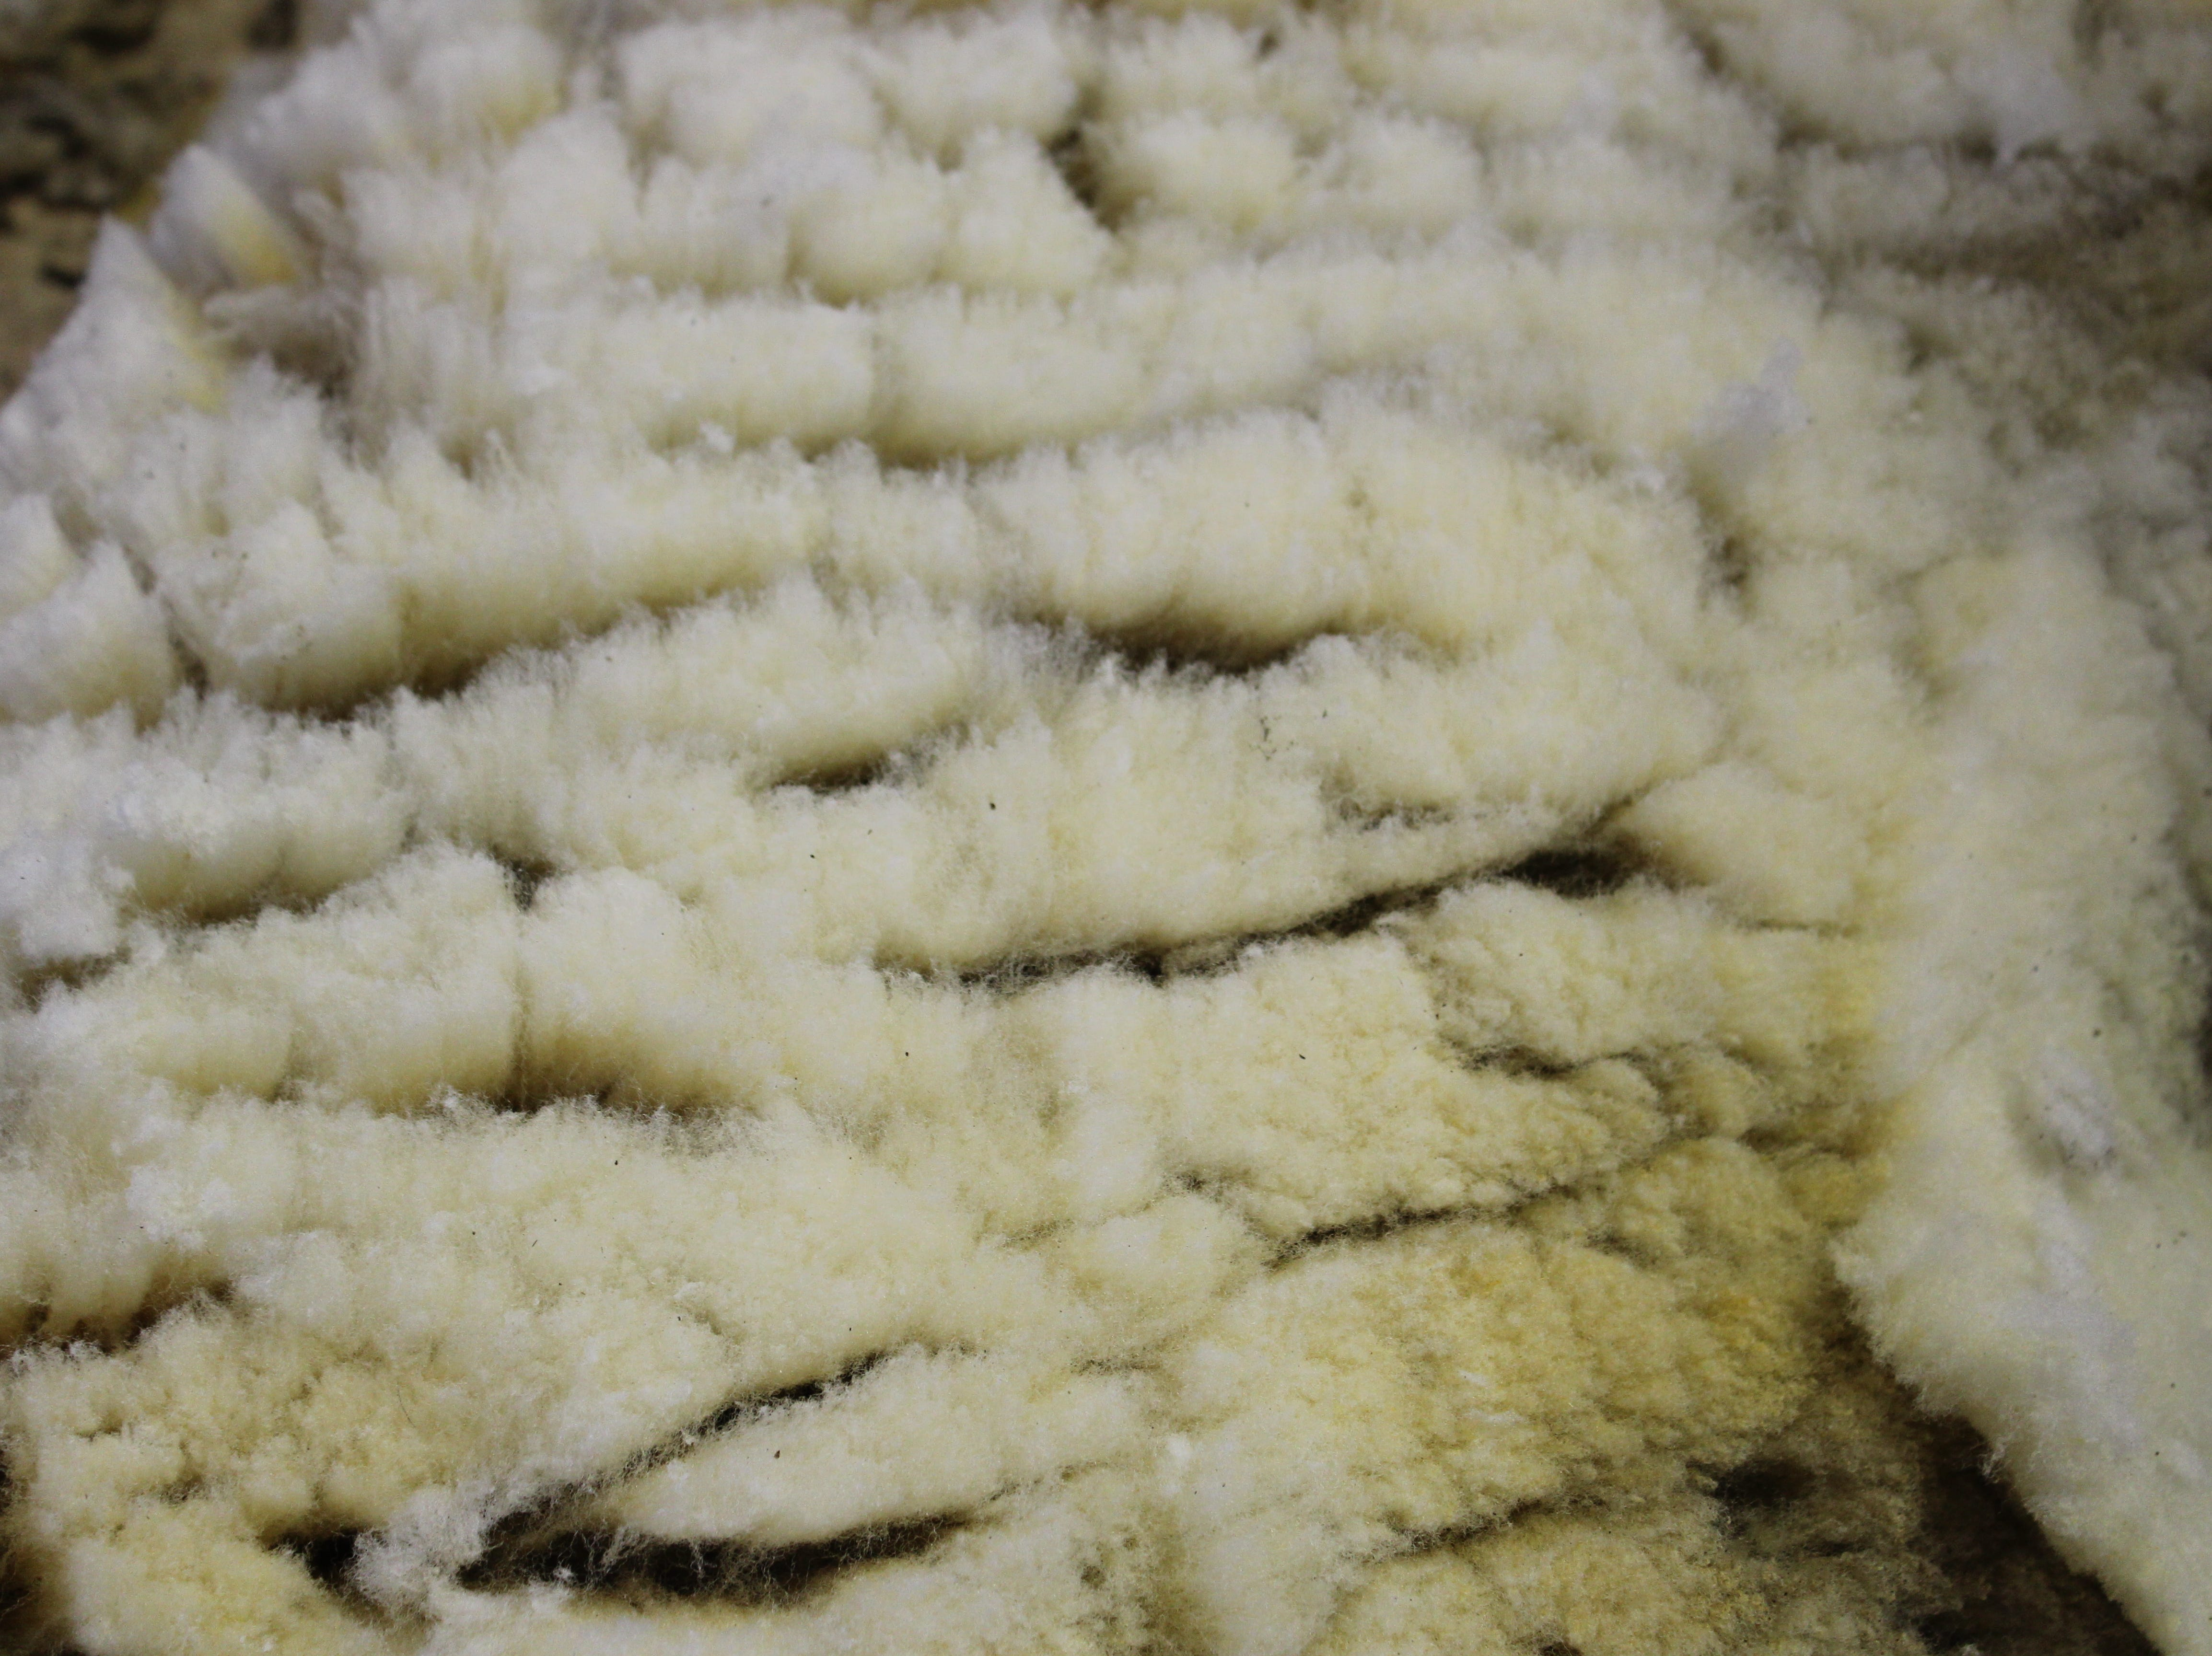 Coarse, farm flock fleece from the Kottke's meat breed sheep will be sold for use in the carpet industry.